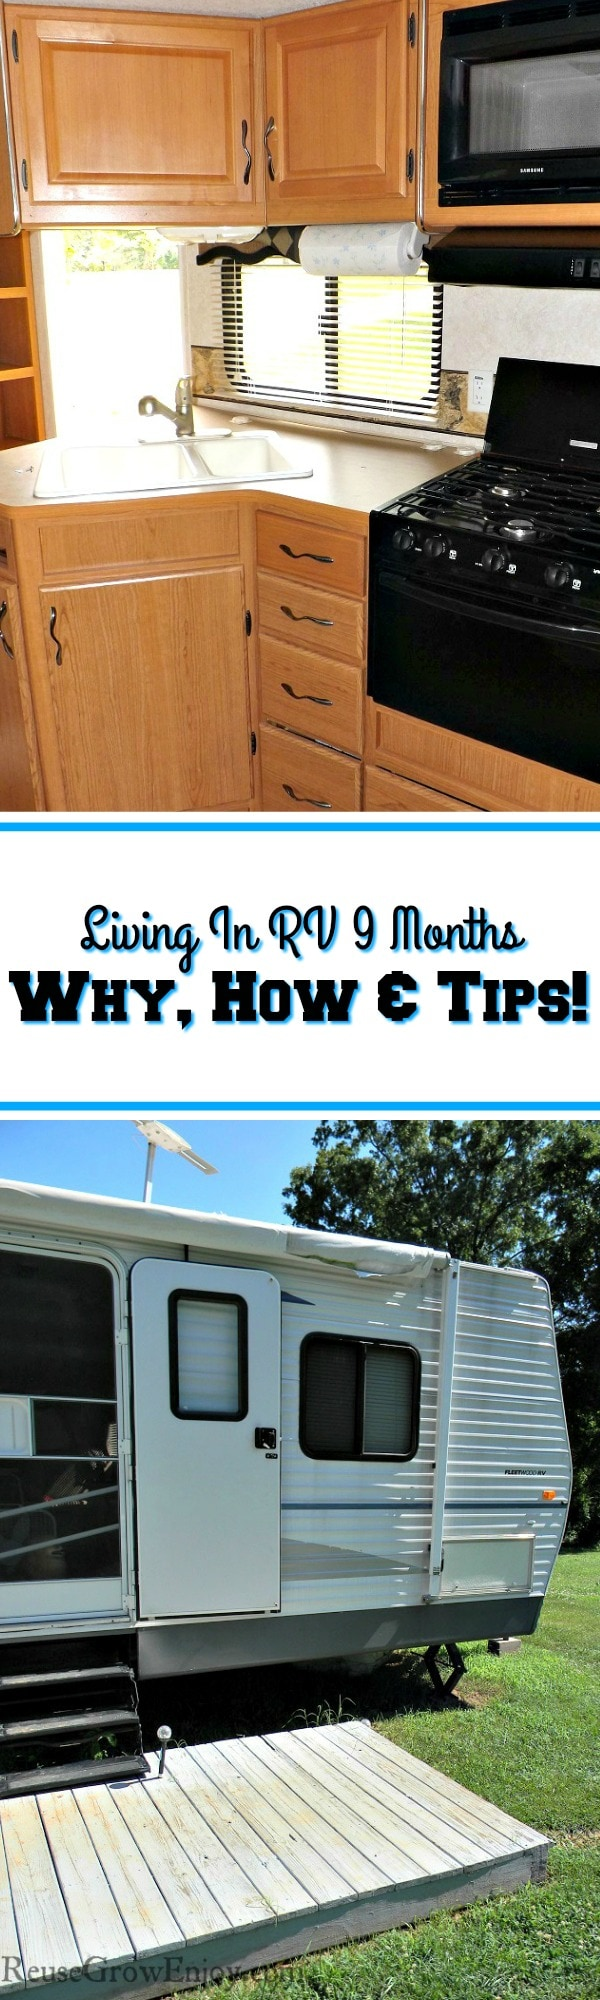 Have you ever thought about living in an RV? We did for 9 months! I a going to share our story of why, how and even share some RV living tips with you! These tips can be used for RV living or just for camping too.